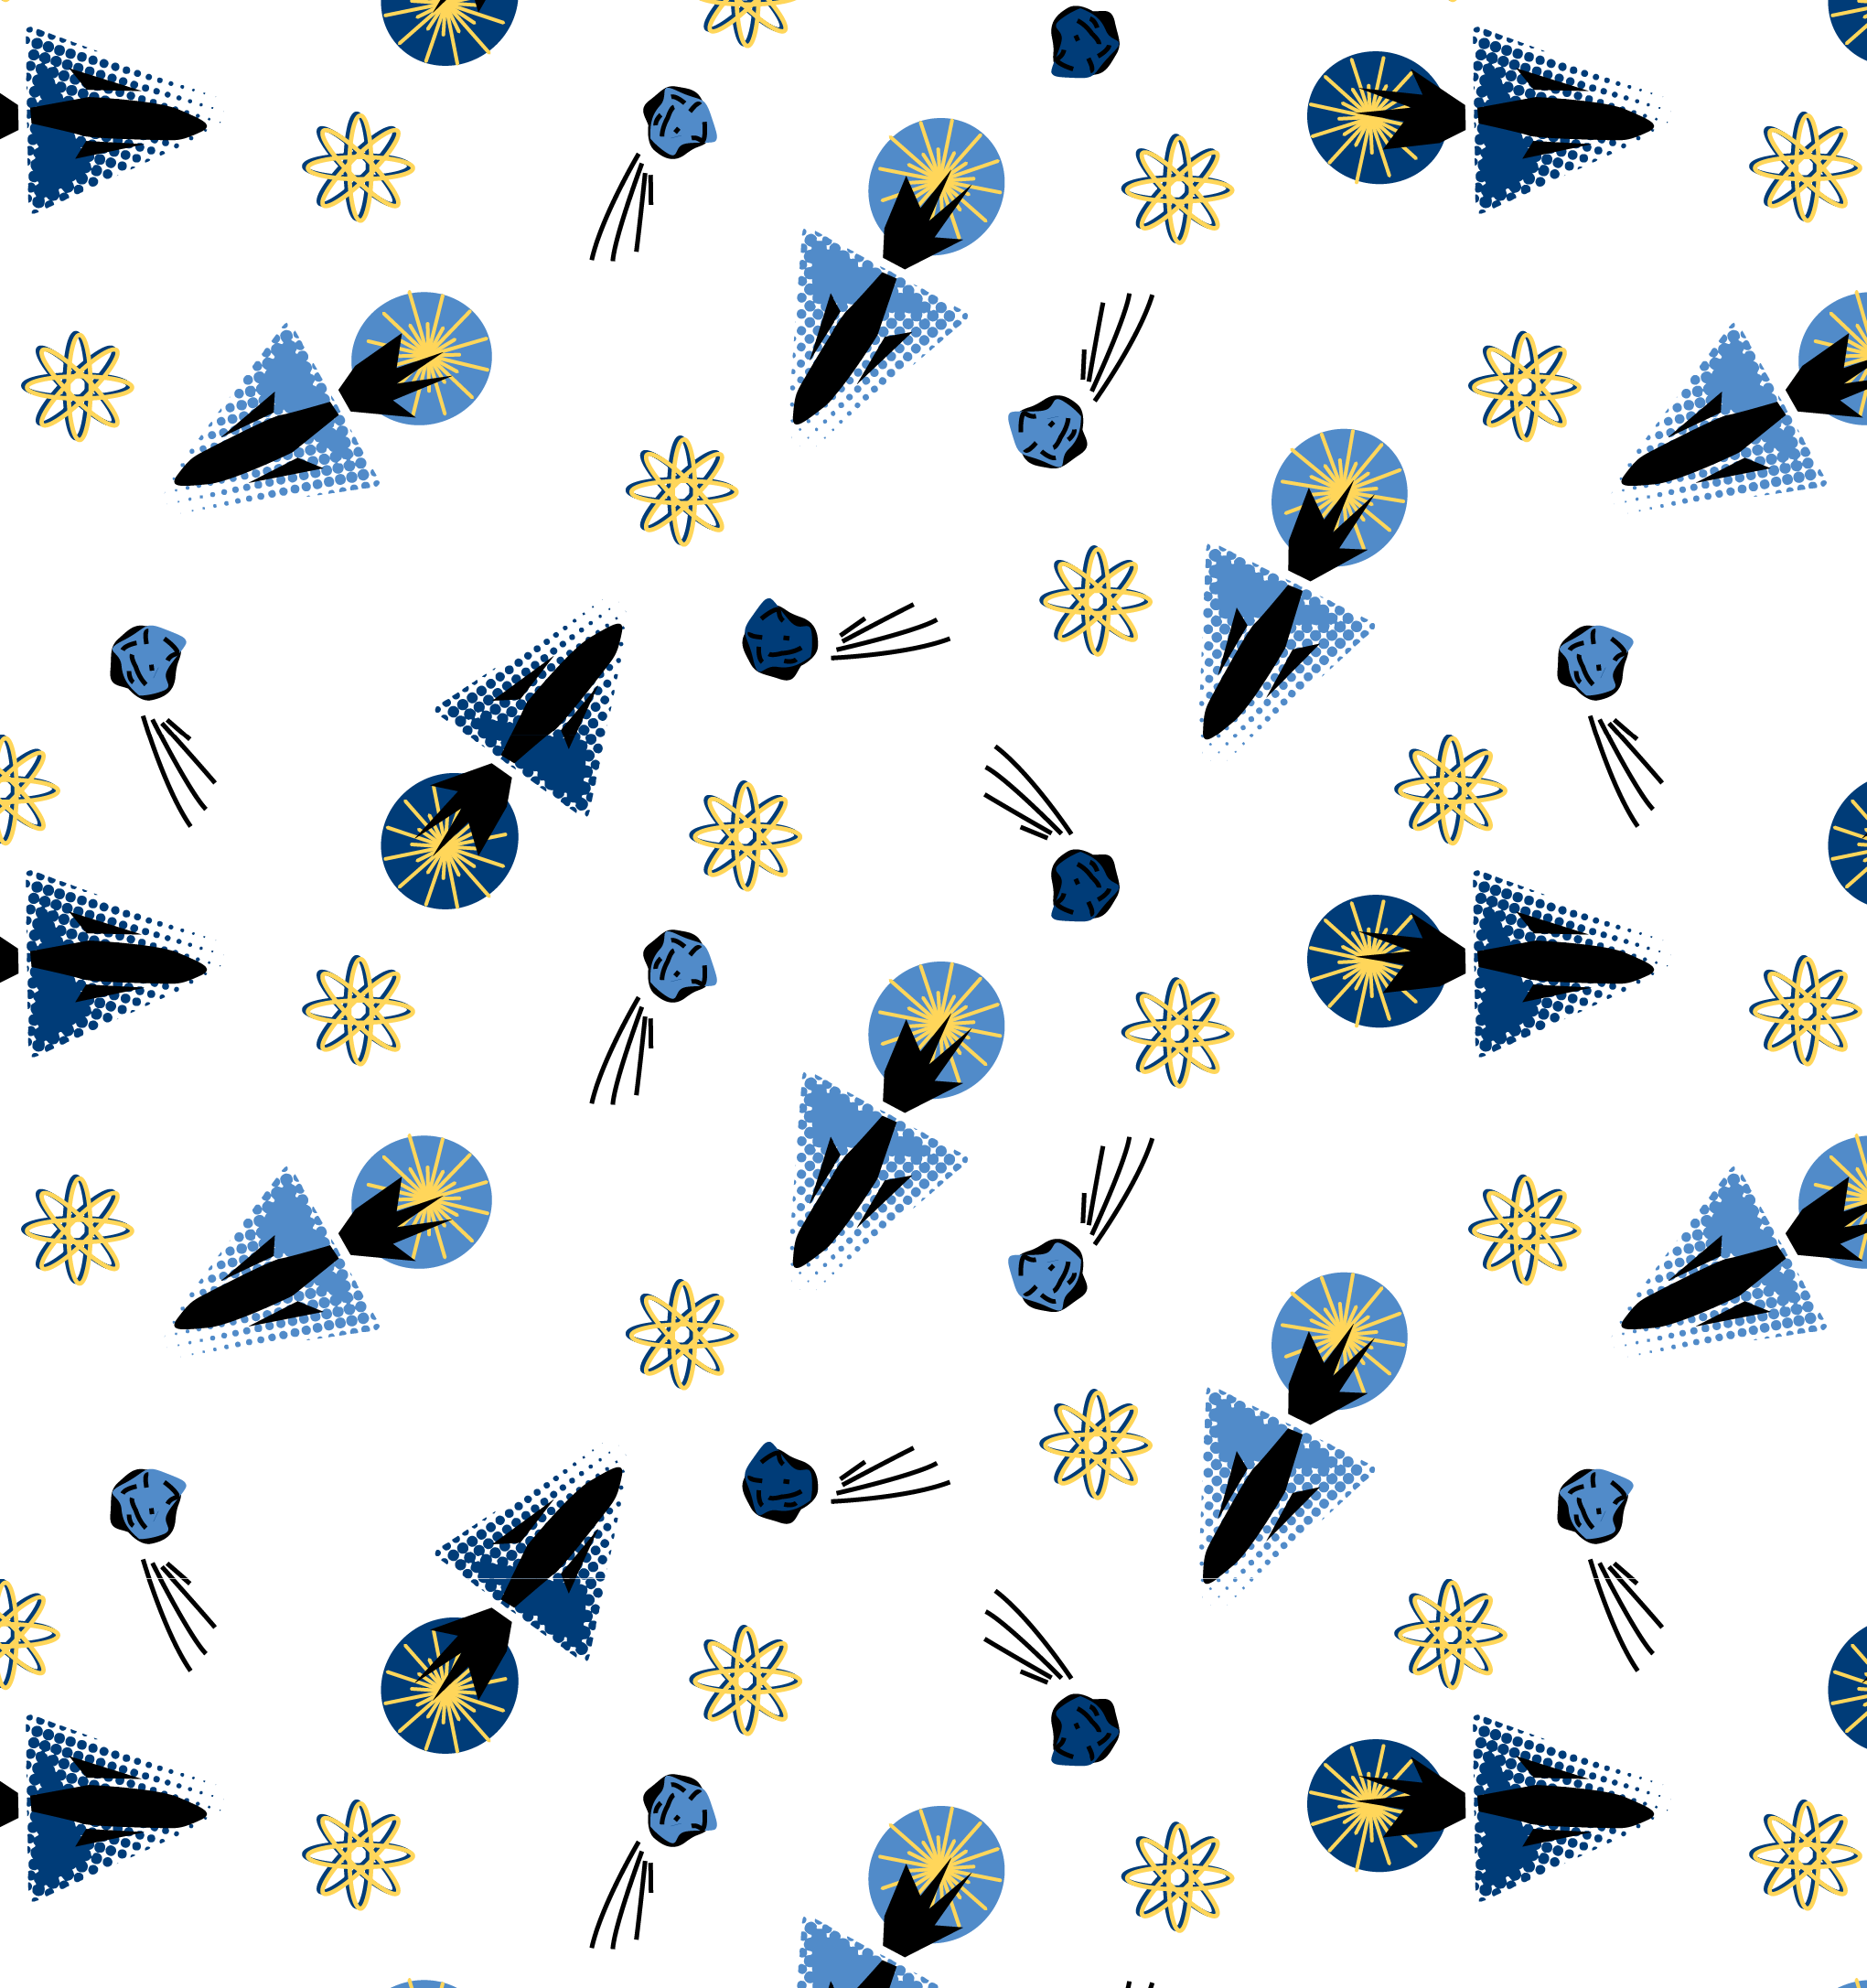 Sylvia Brewster textile print in repeat of boys rocket pattern, created in Illustrator